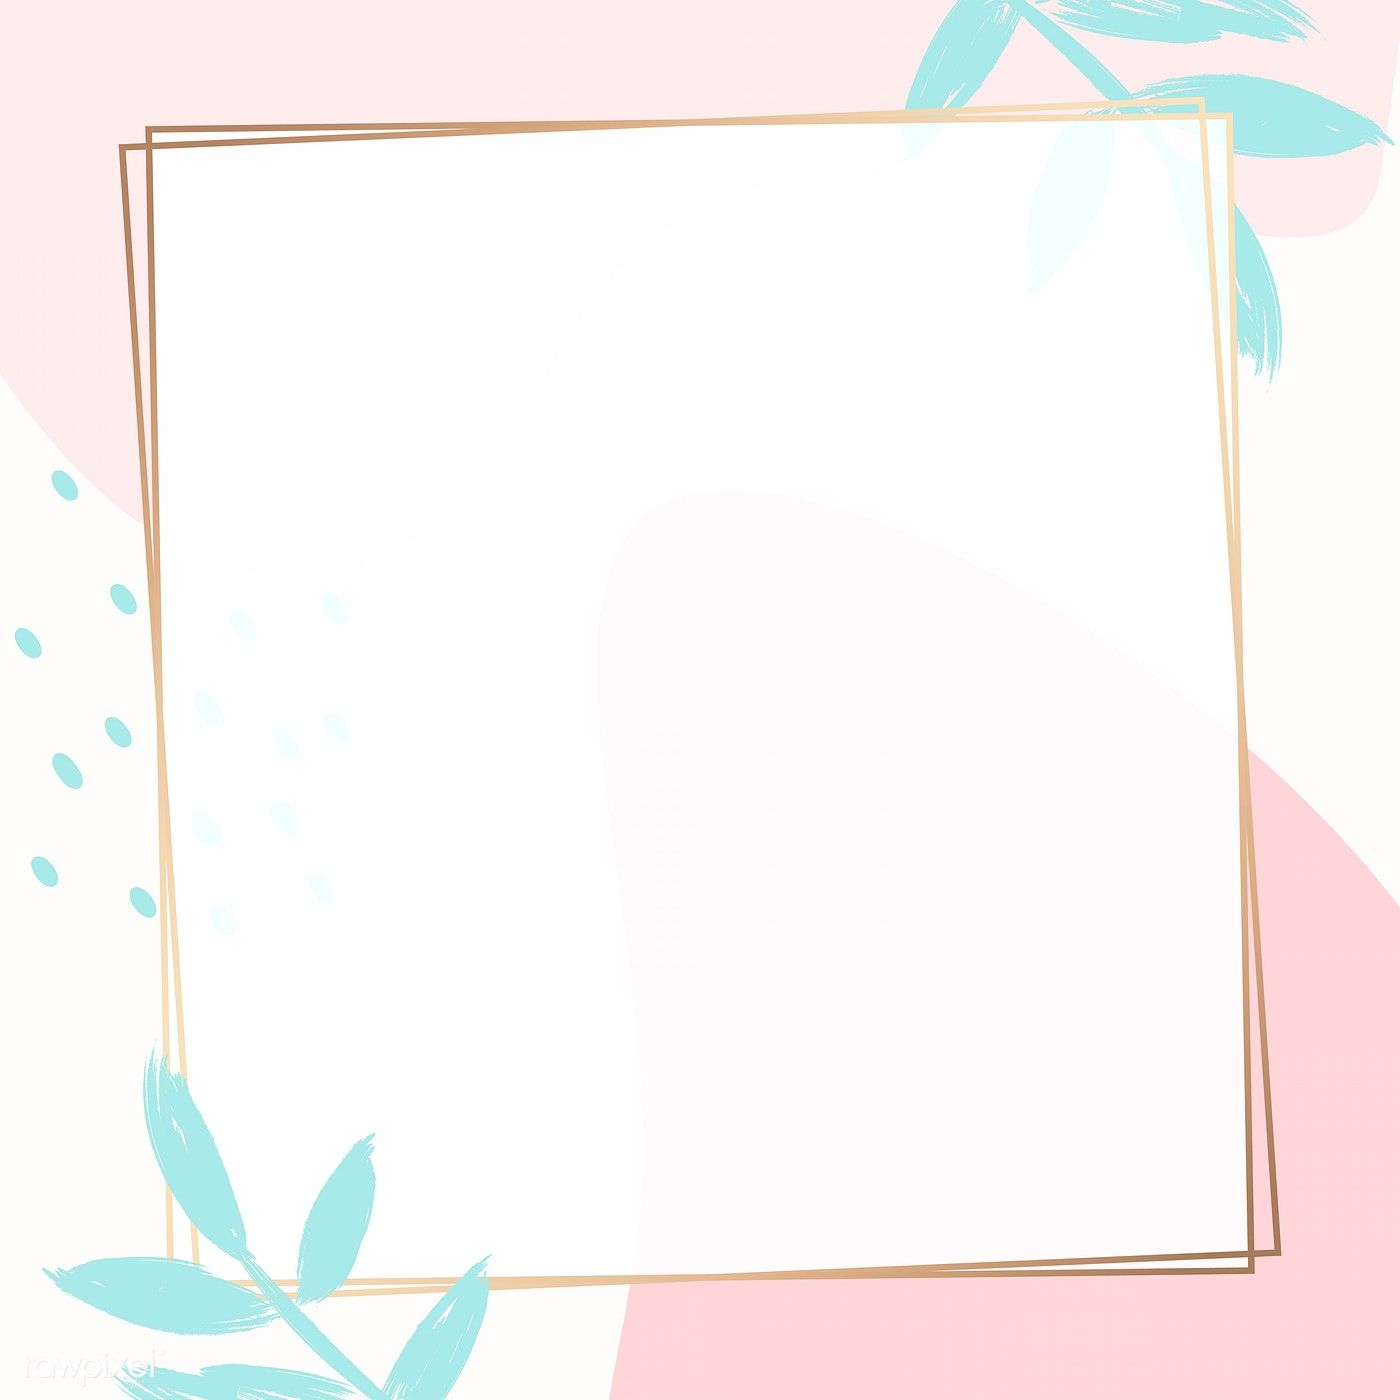 Download premium vector of Square golden frame on a colorful.